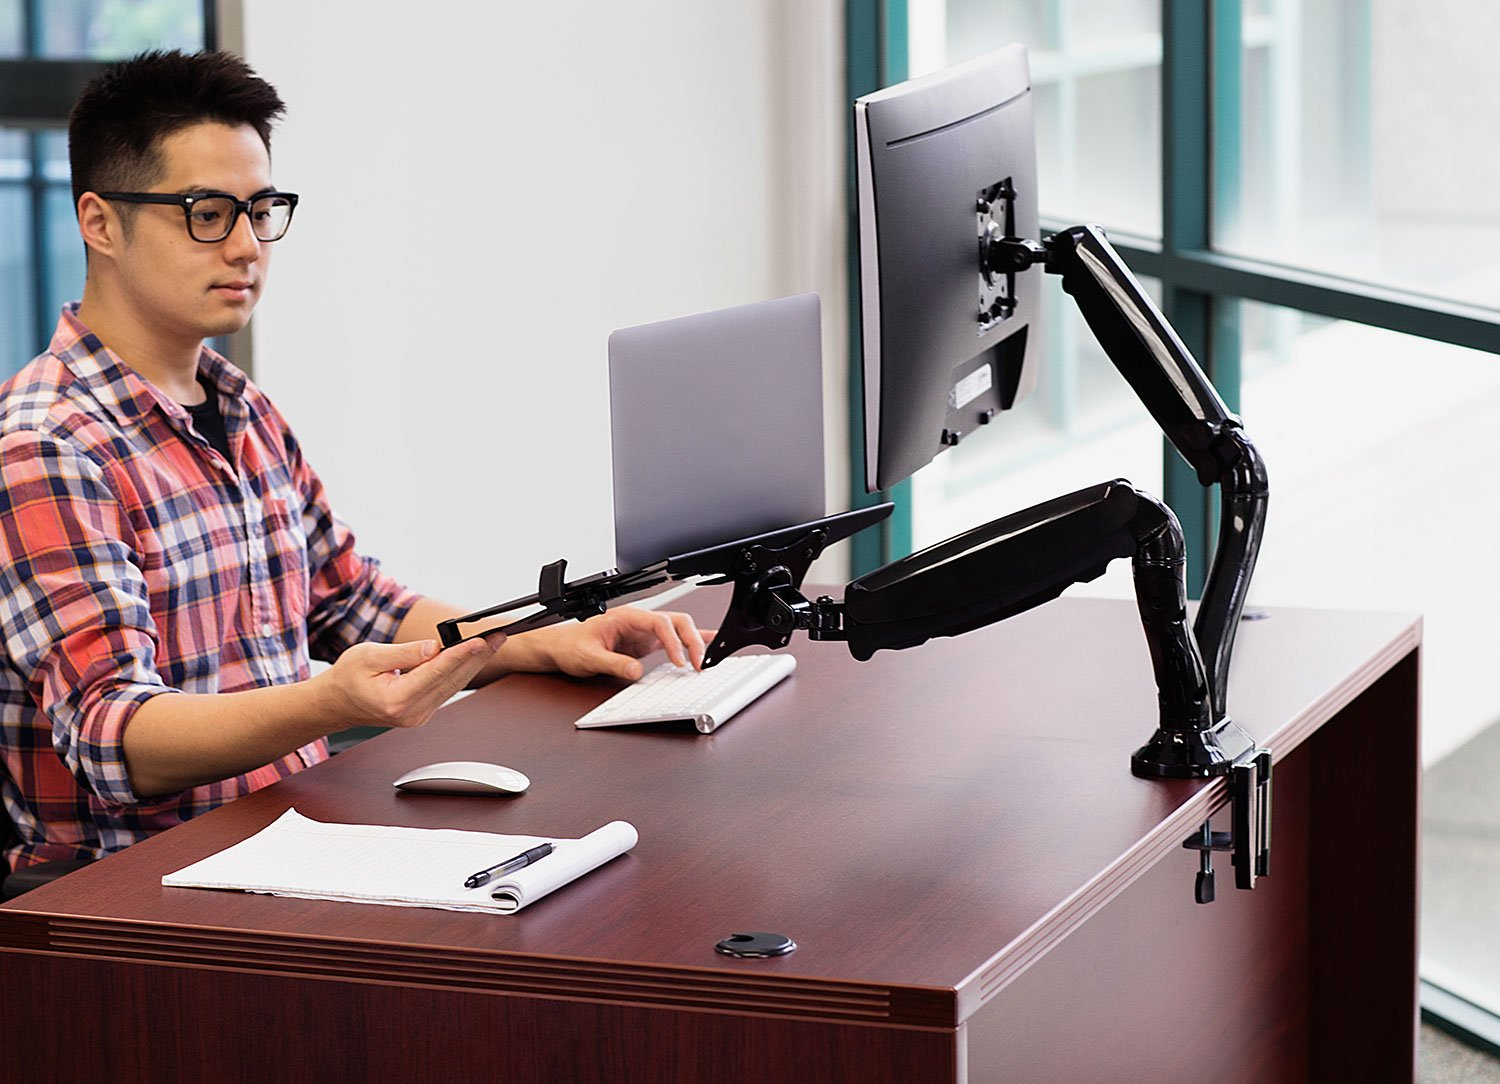 Mount-It! Laptop Desk Stand and Monitor Mount, Full Motion Monitor and Laptop Arm, Fits up to 15.6 Inch Notebooks, VESA 75, 100 Compatible with 22, 23, 24, 27, 32 inch Screens, 13.2 Lbs Per Arm by Mount-It! (Image #3)